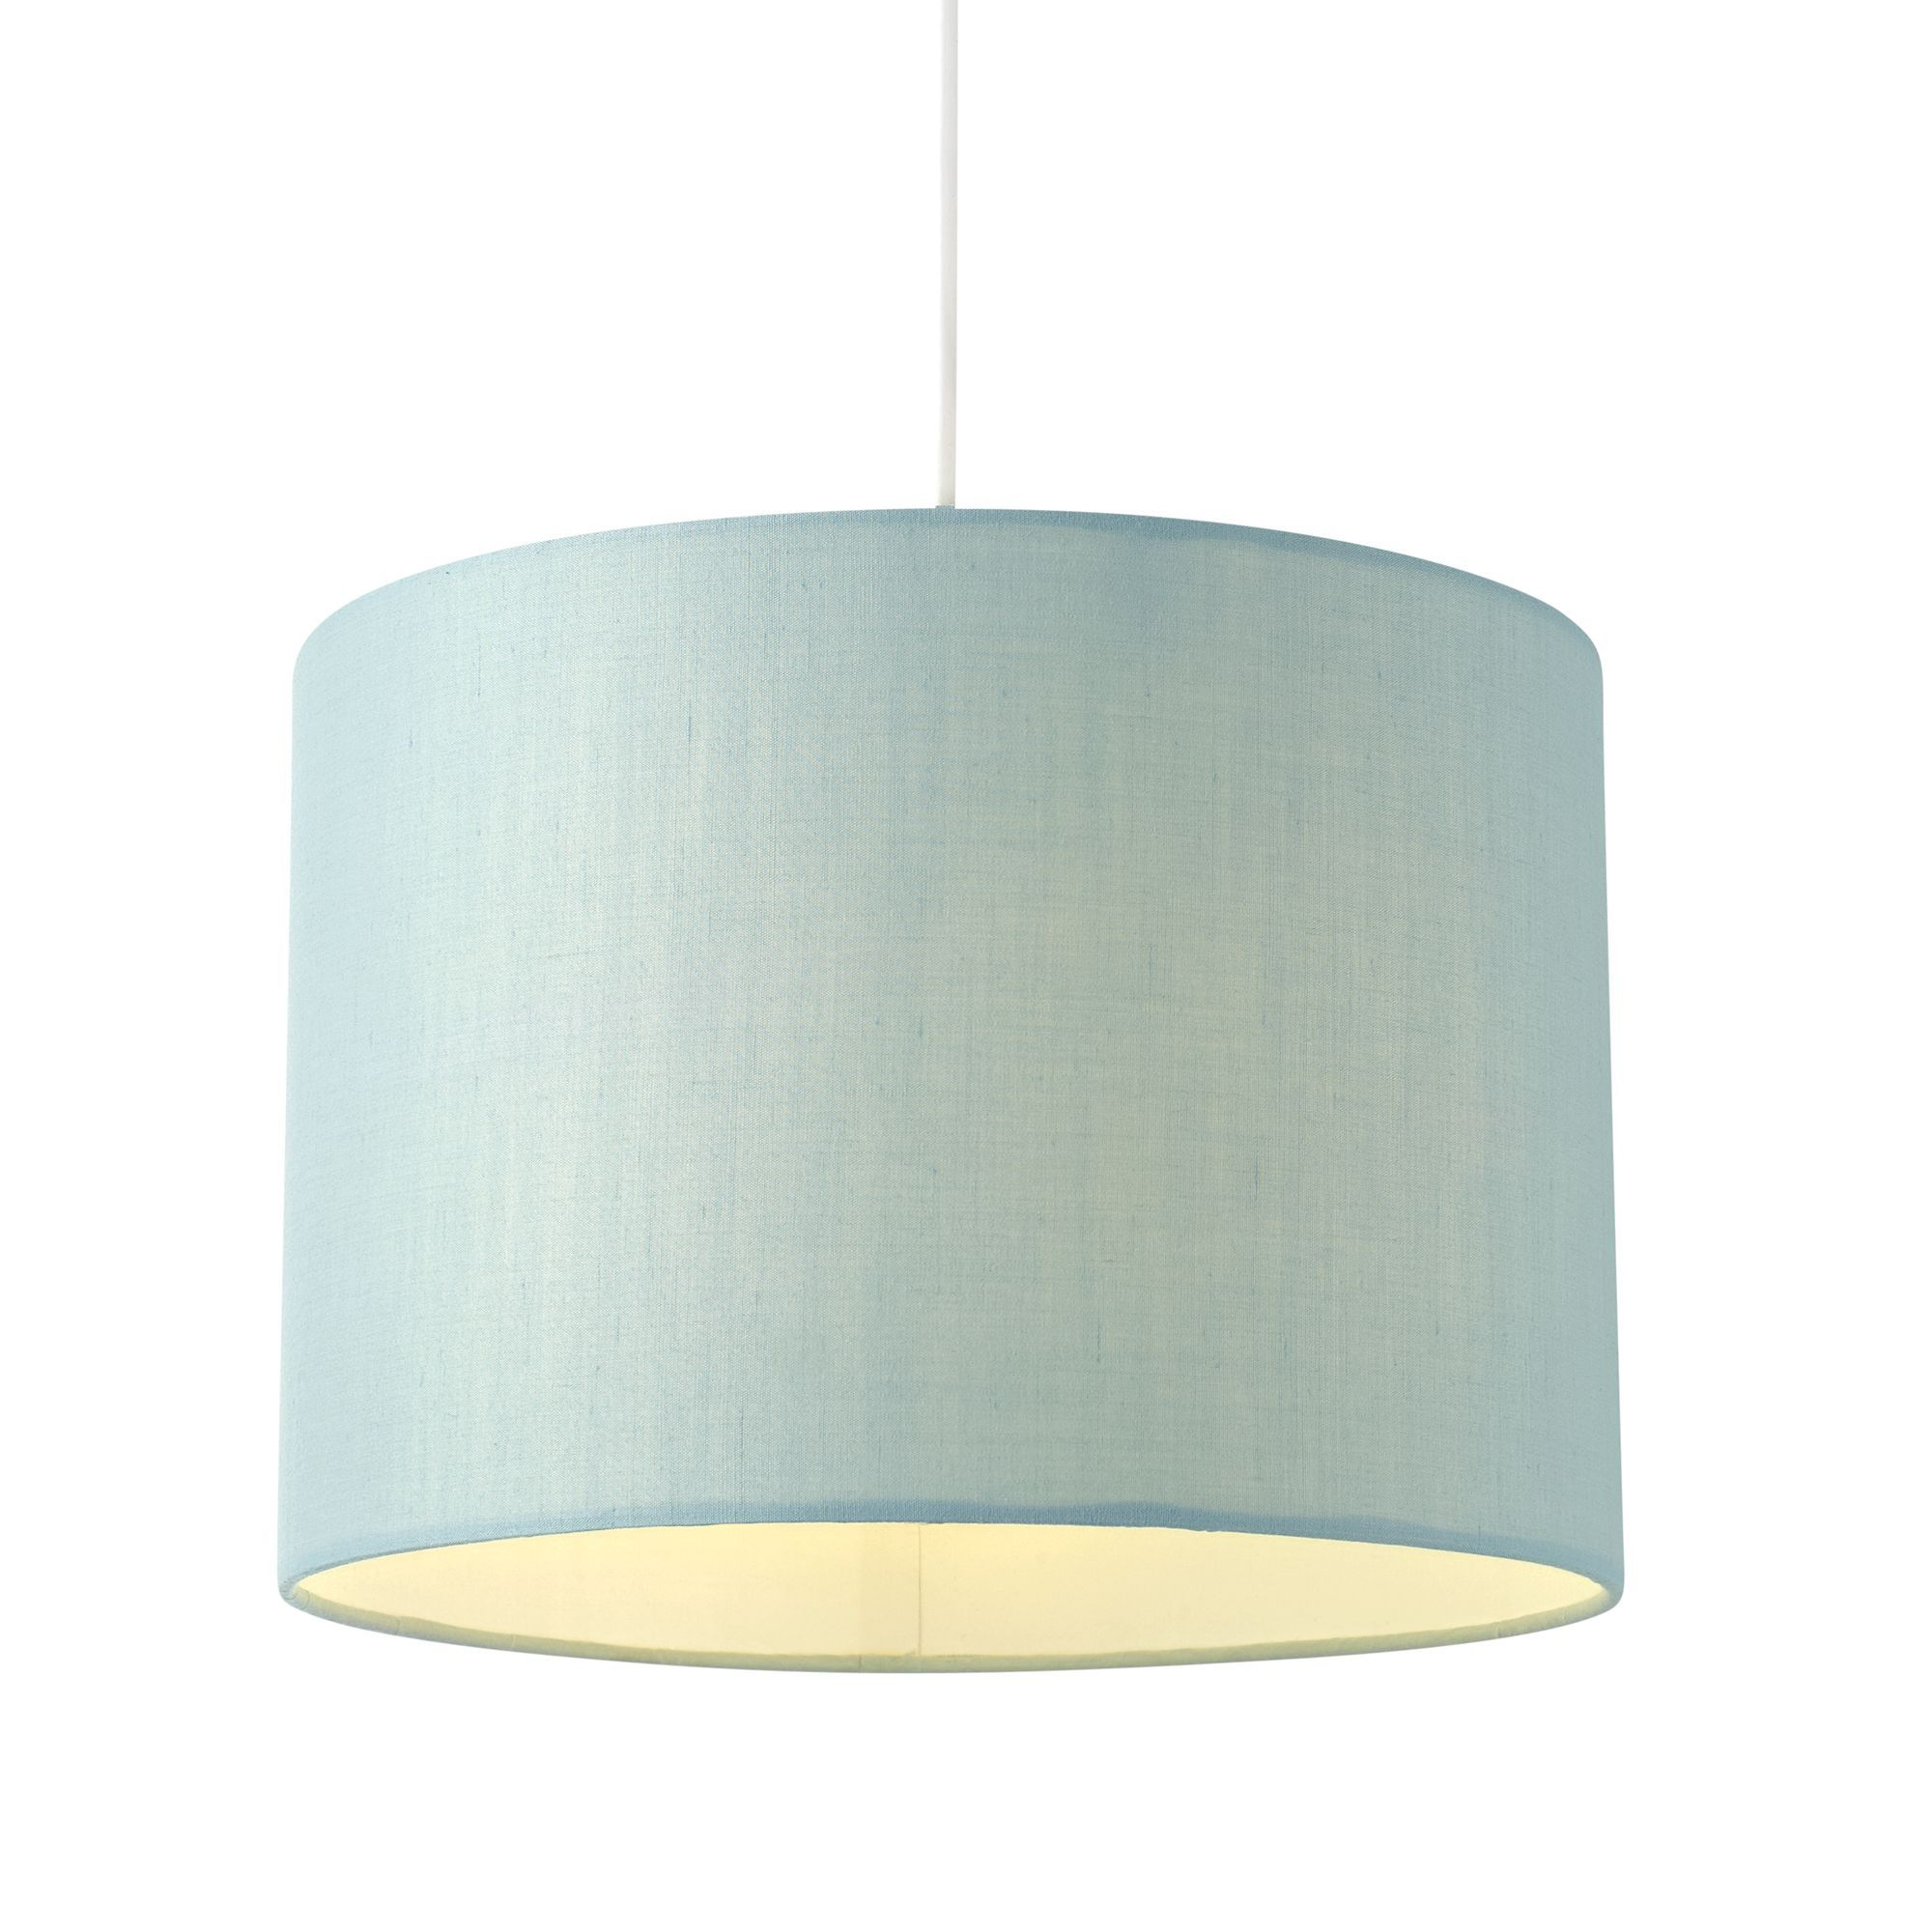 Colours Fairbank Duck Egg Blue Drum Light Shade (Dia)280mm